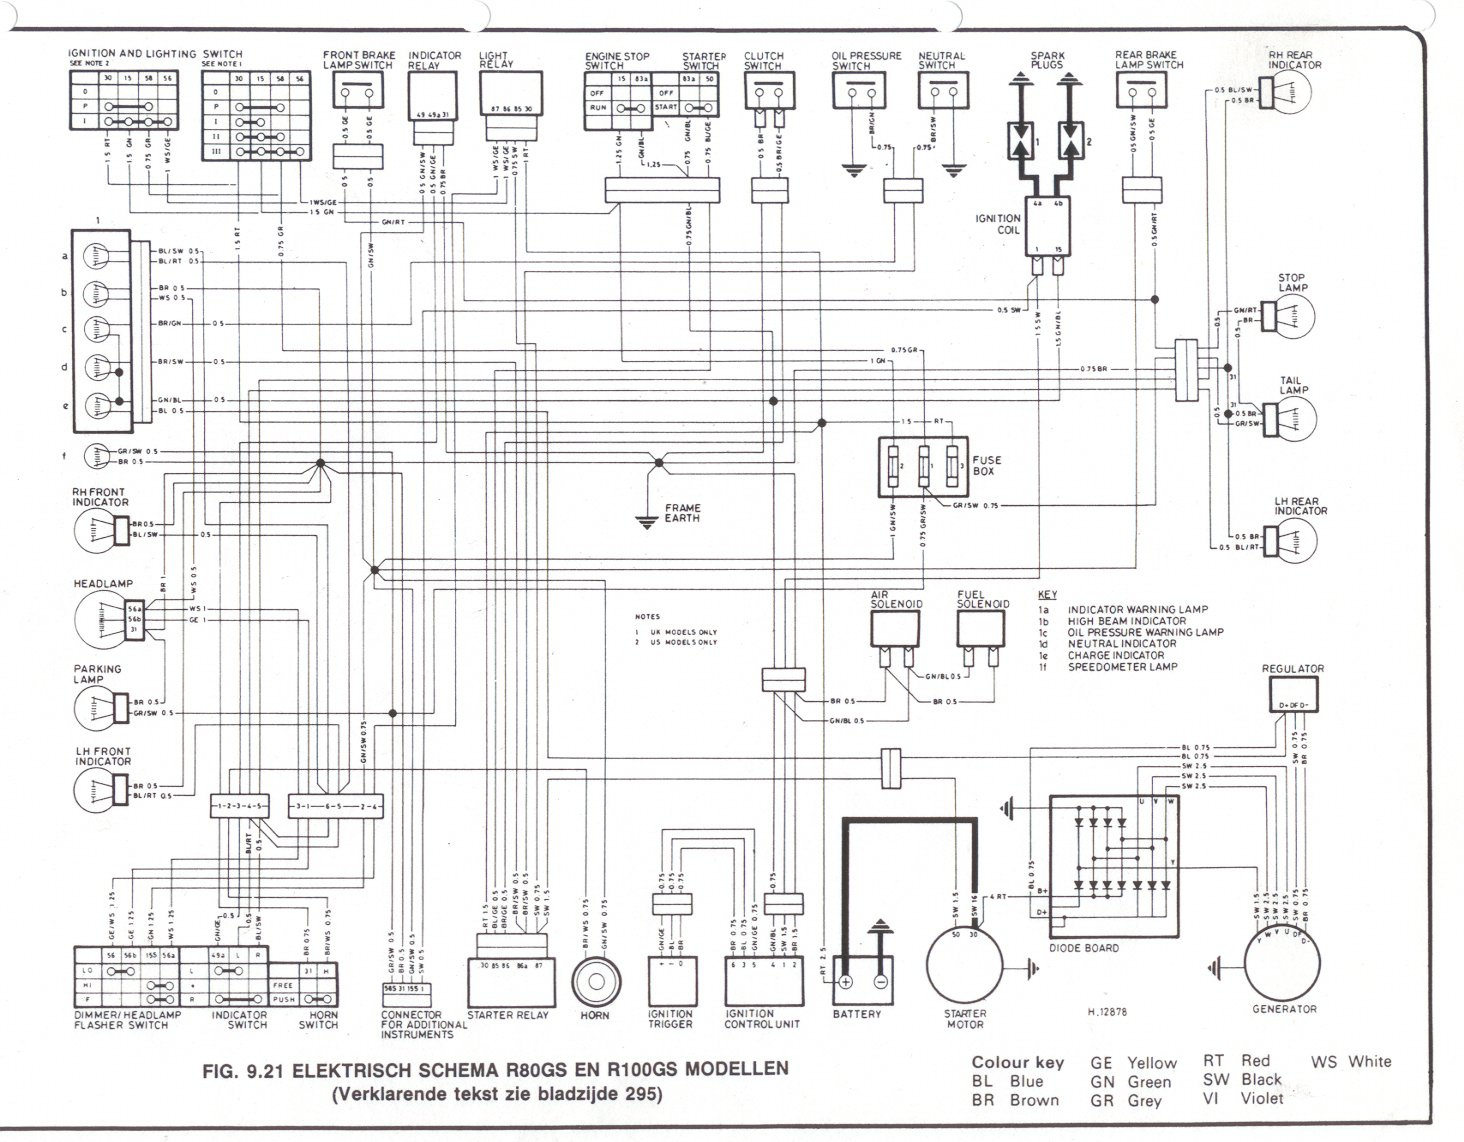 R80 100GS Schematic bmw r100 info thiel org za bmw r100rs gauge wiring diagram at eliteediting.co